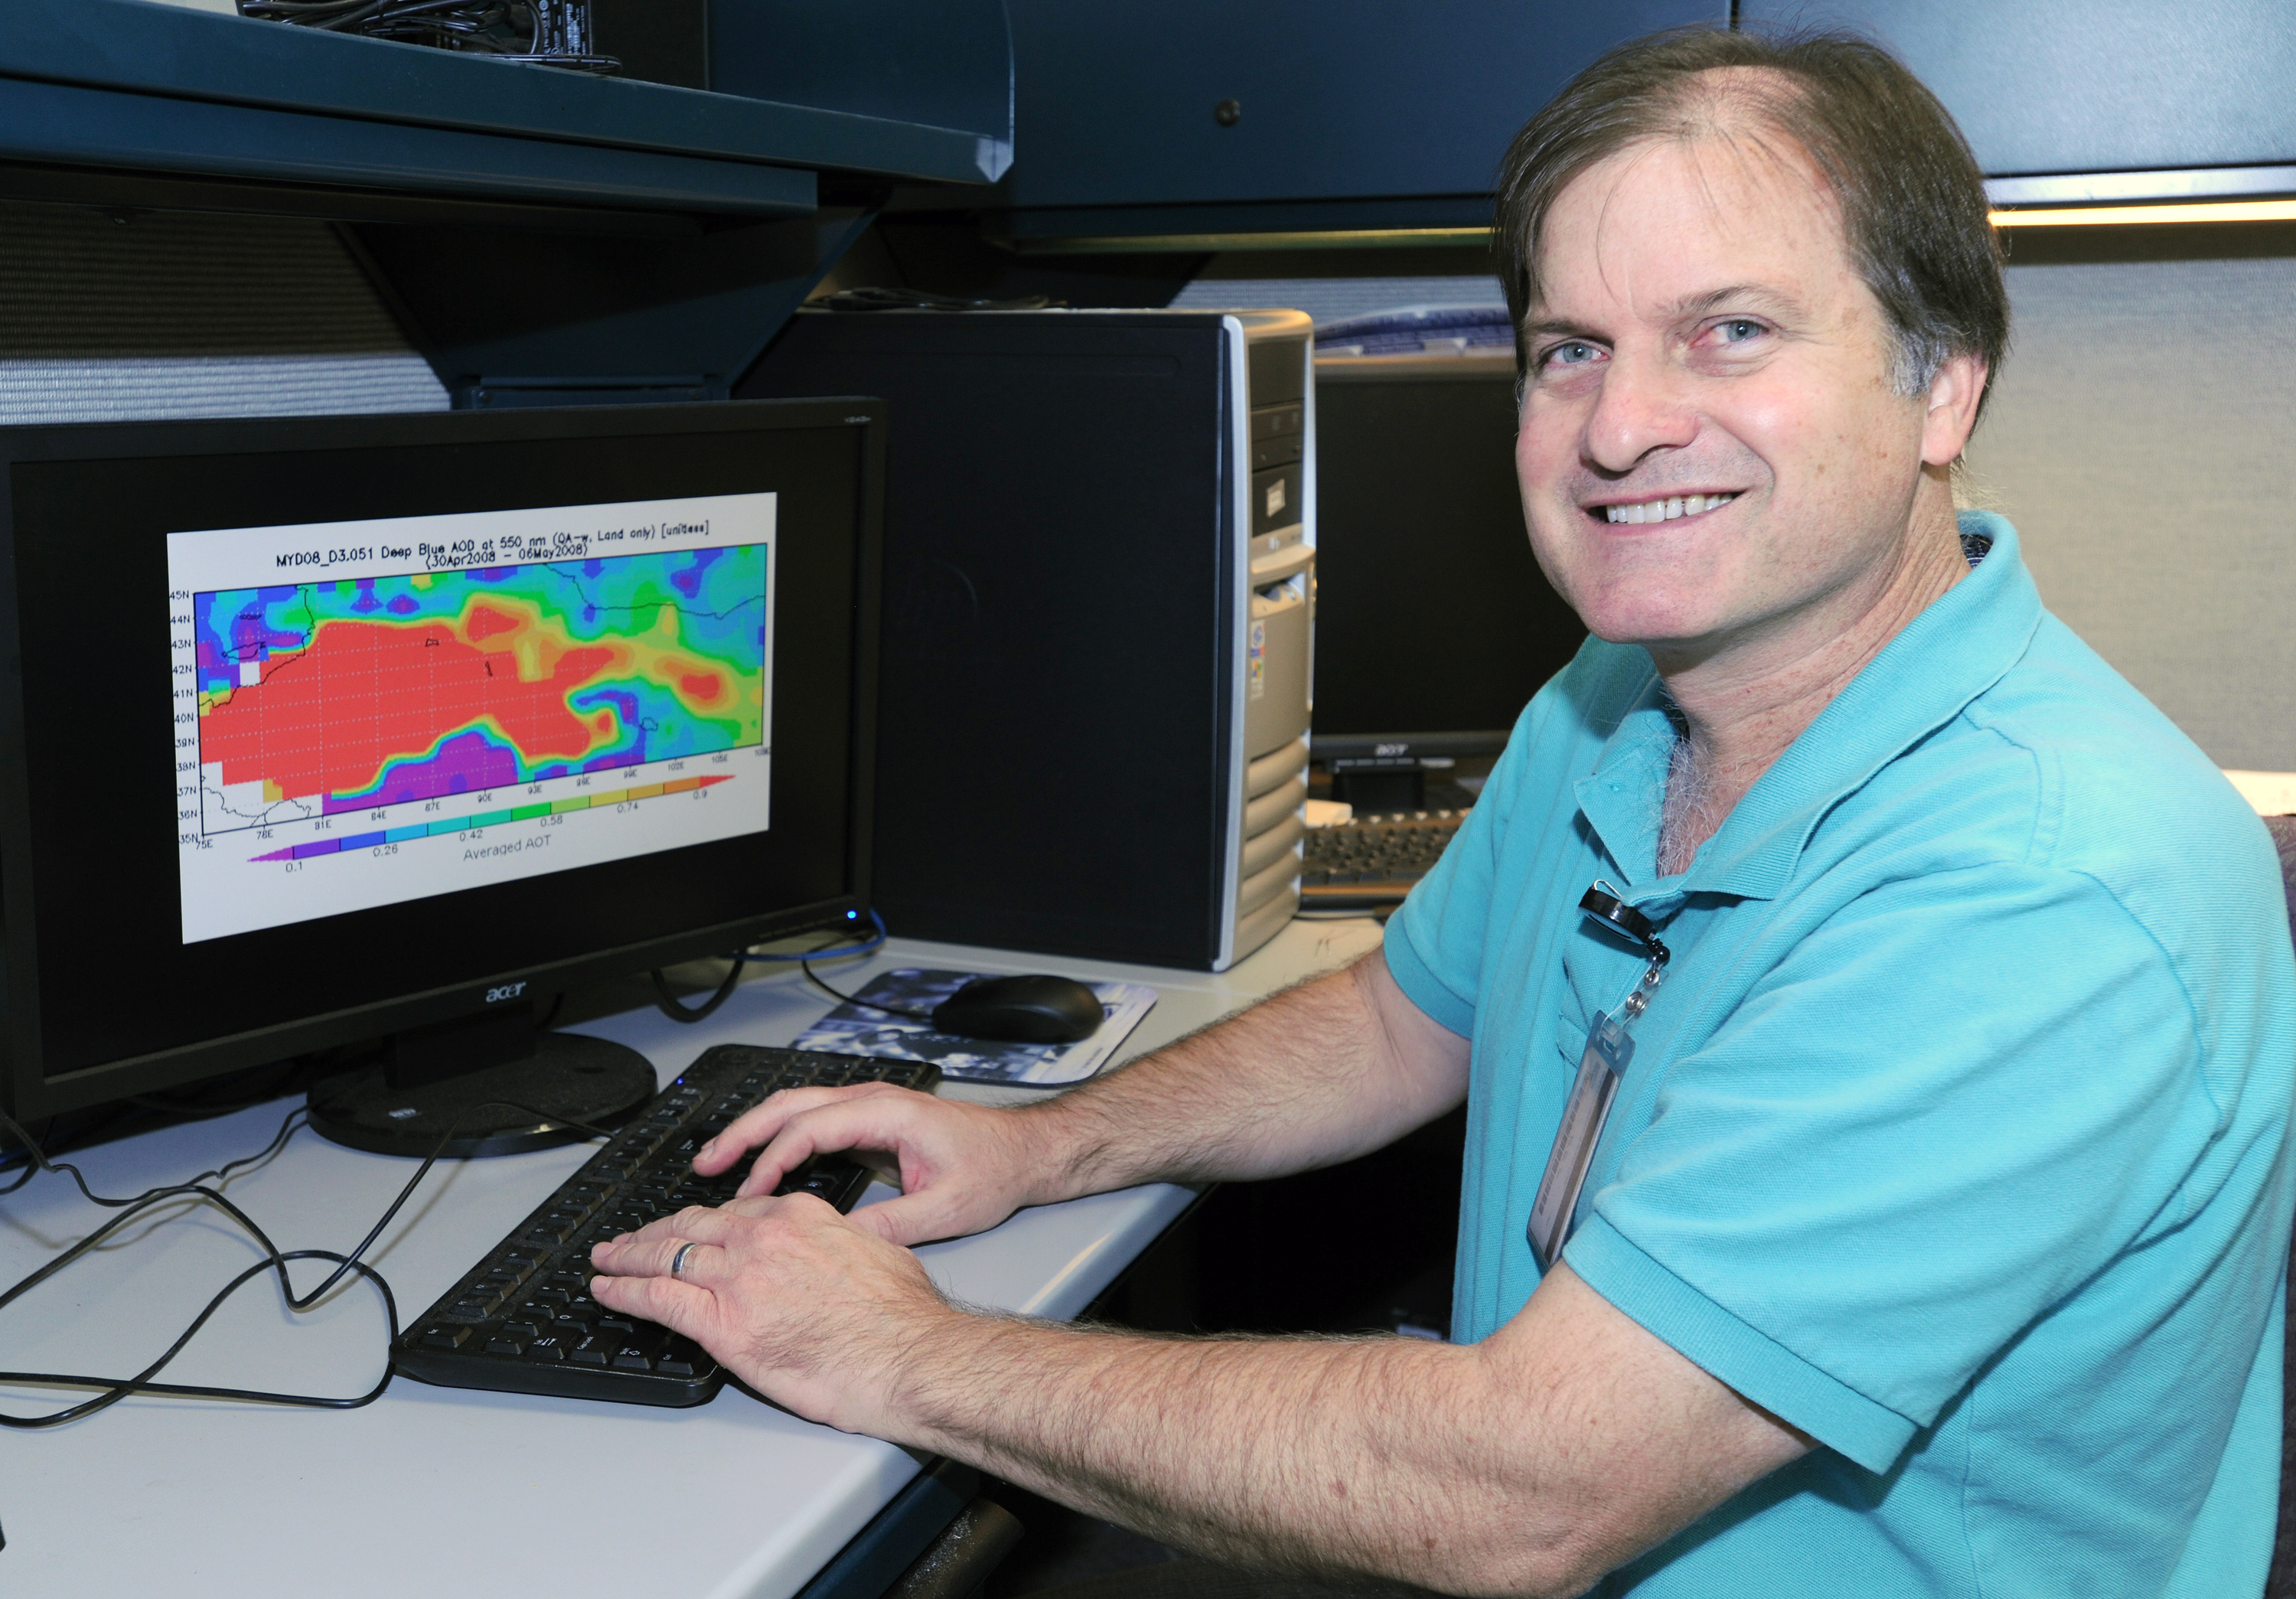 NASA - Dust's Warming Counters Half of its Cooling Effect